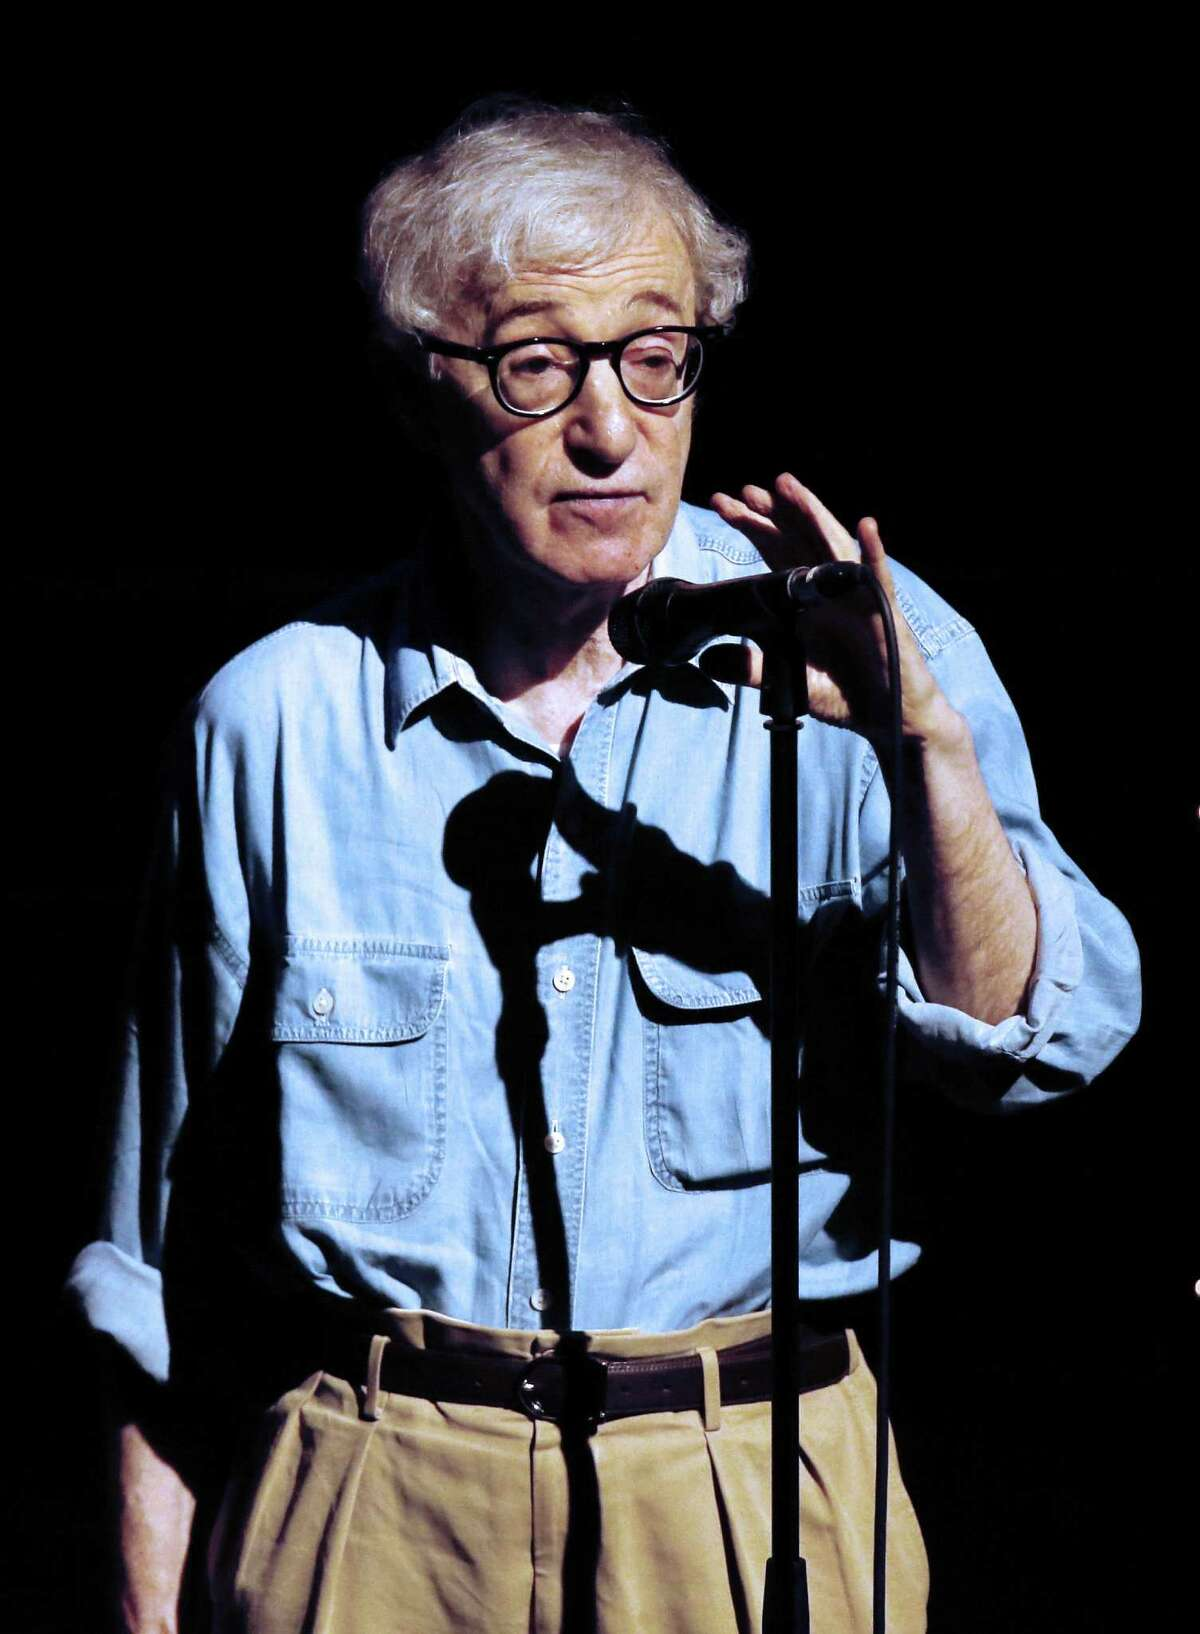 Director Woody Allen returns to darker themes in his latest film, a family drama.